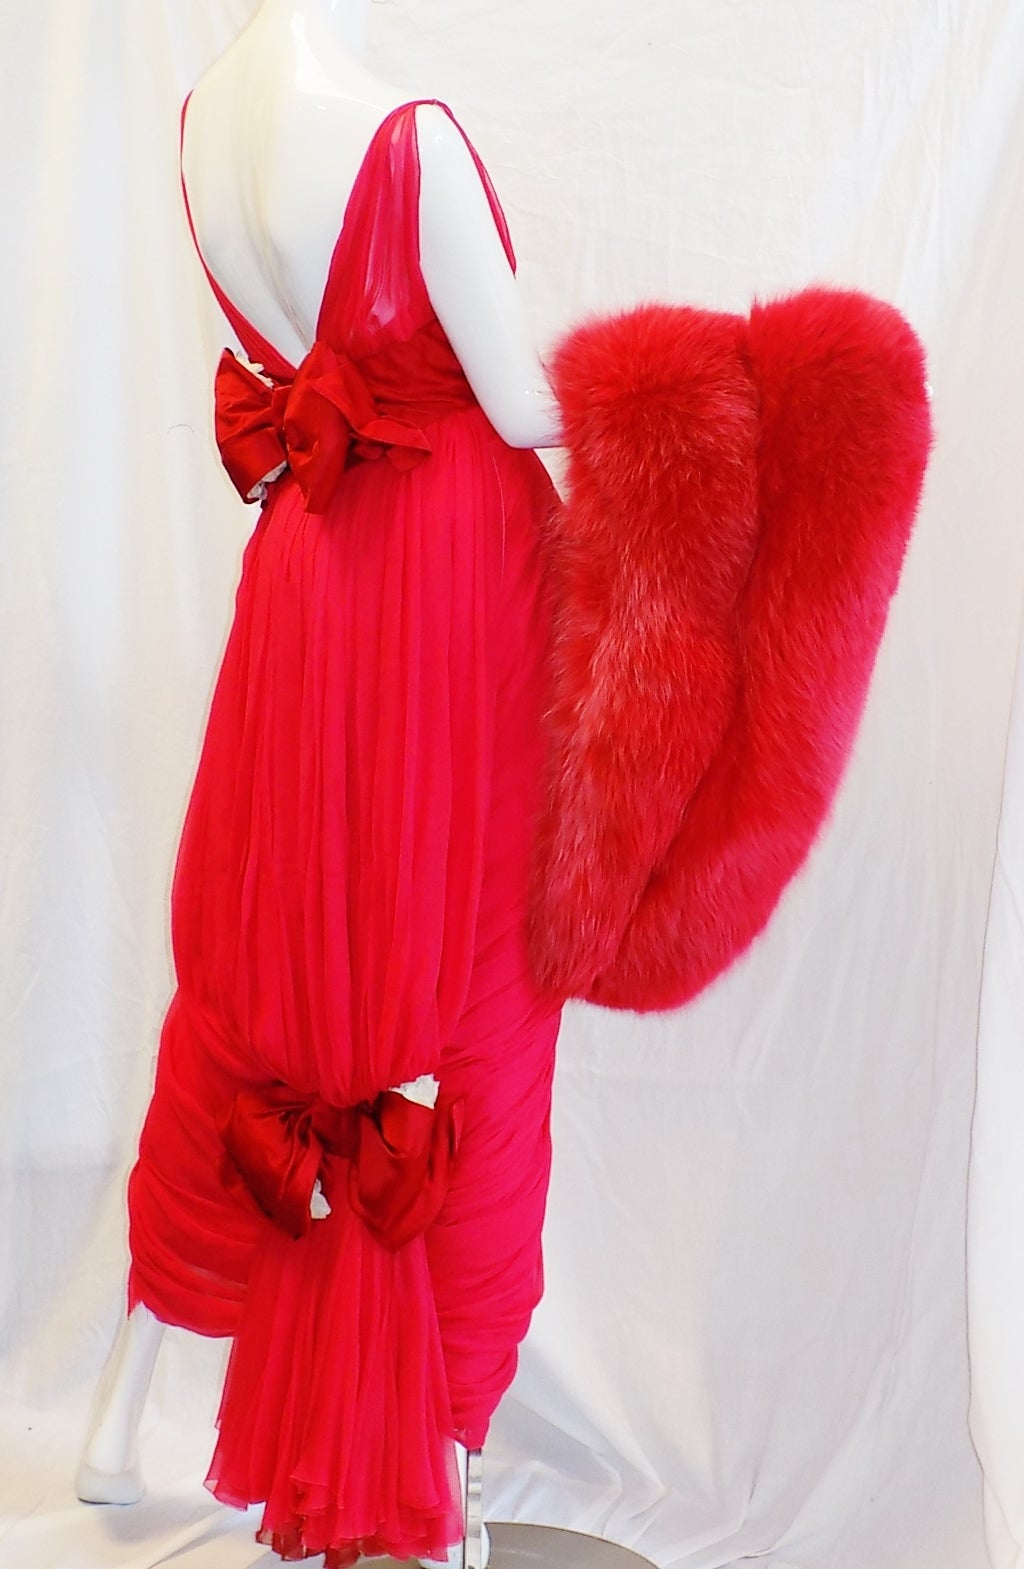 Iconic Jean Dessès Red draped gown with Fox fur stole 1950's For Sale 5